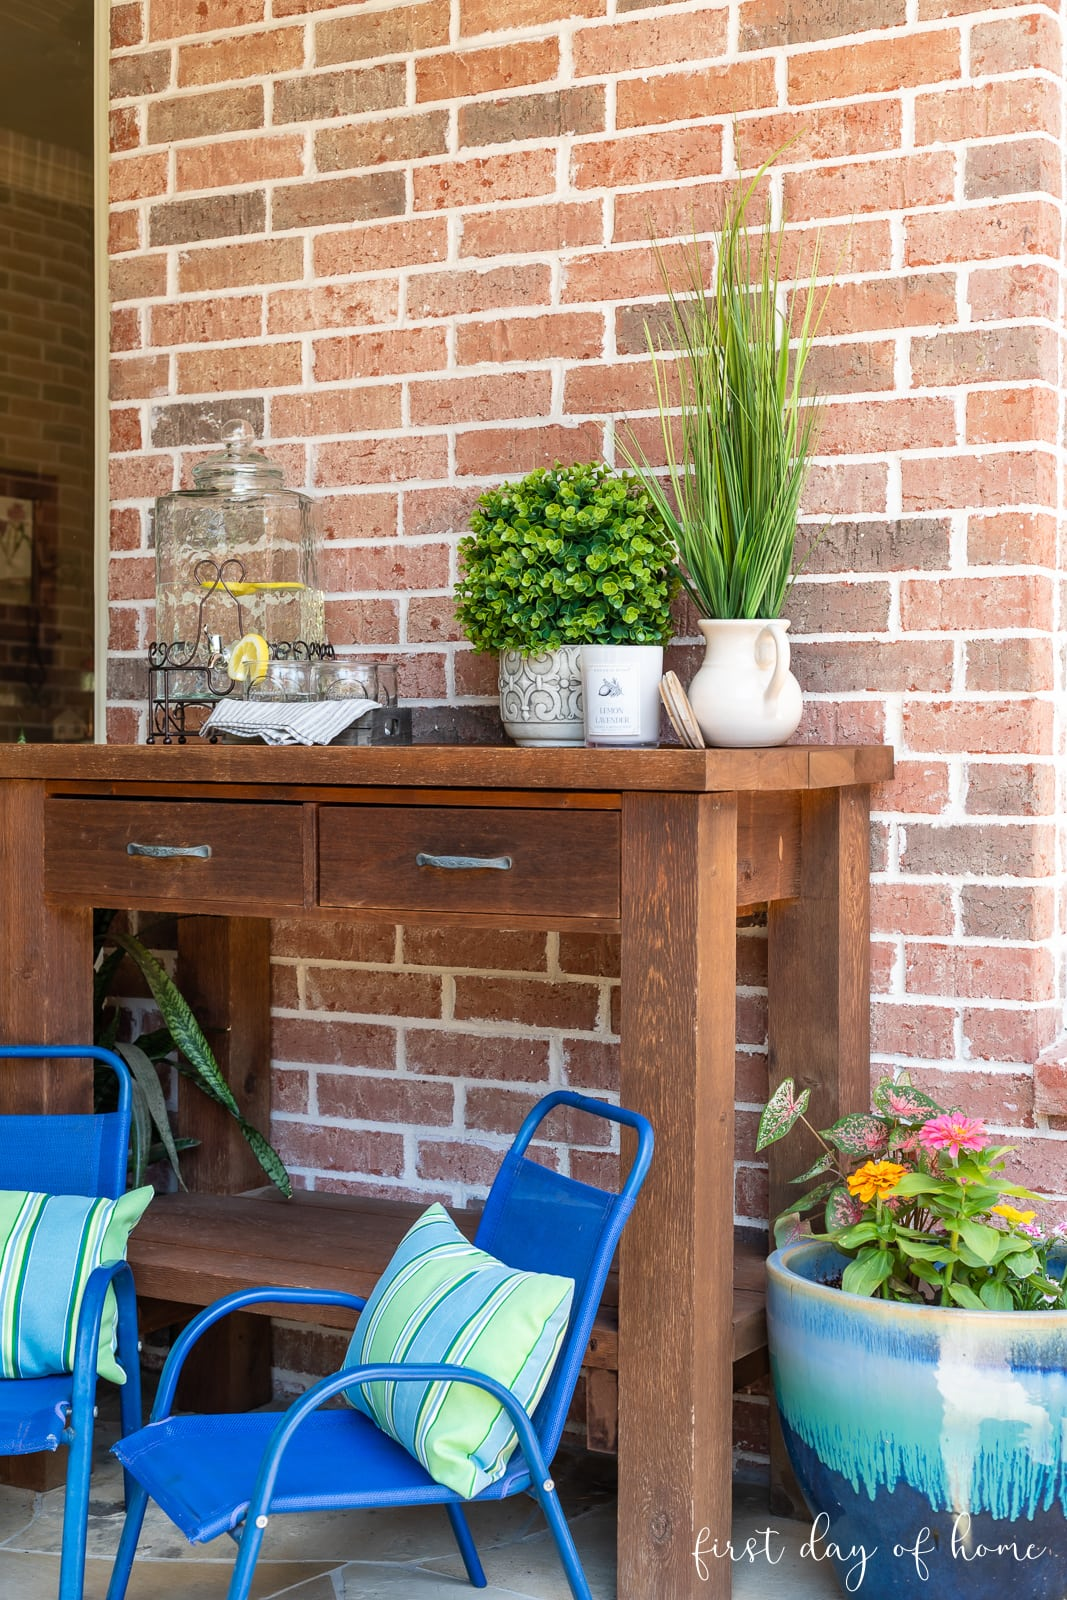 Outdoor patio decor with small kids chairs